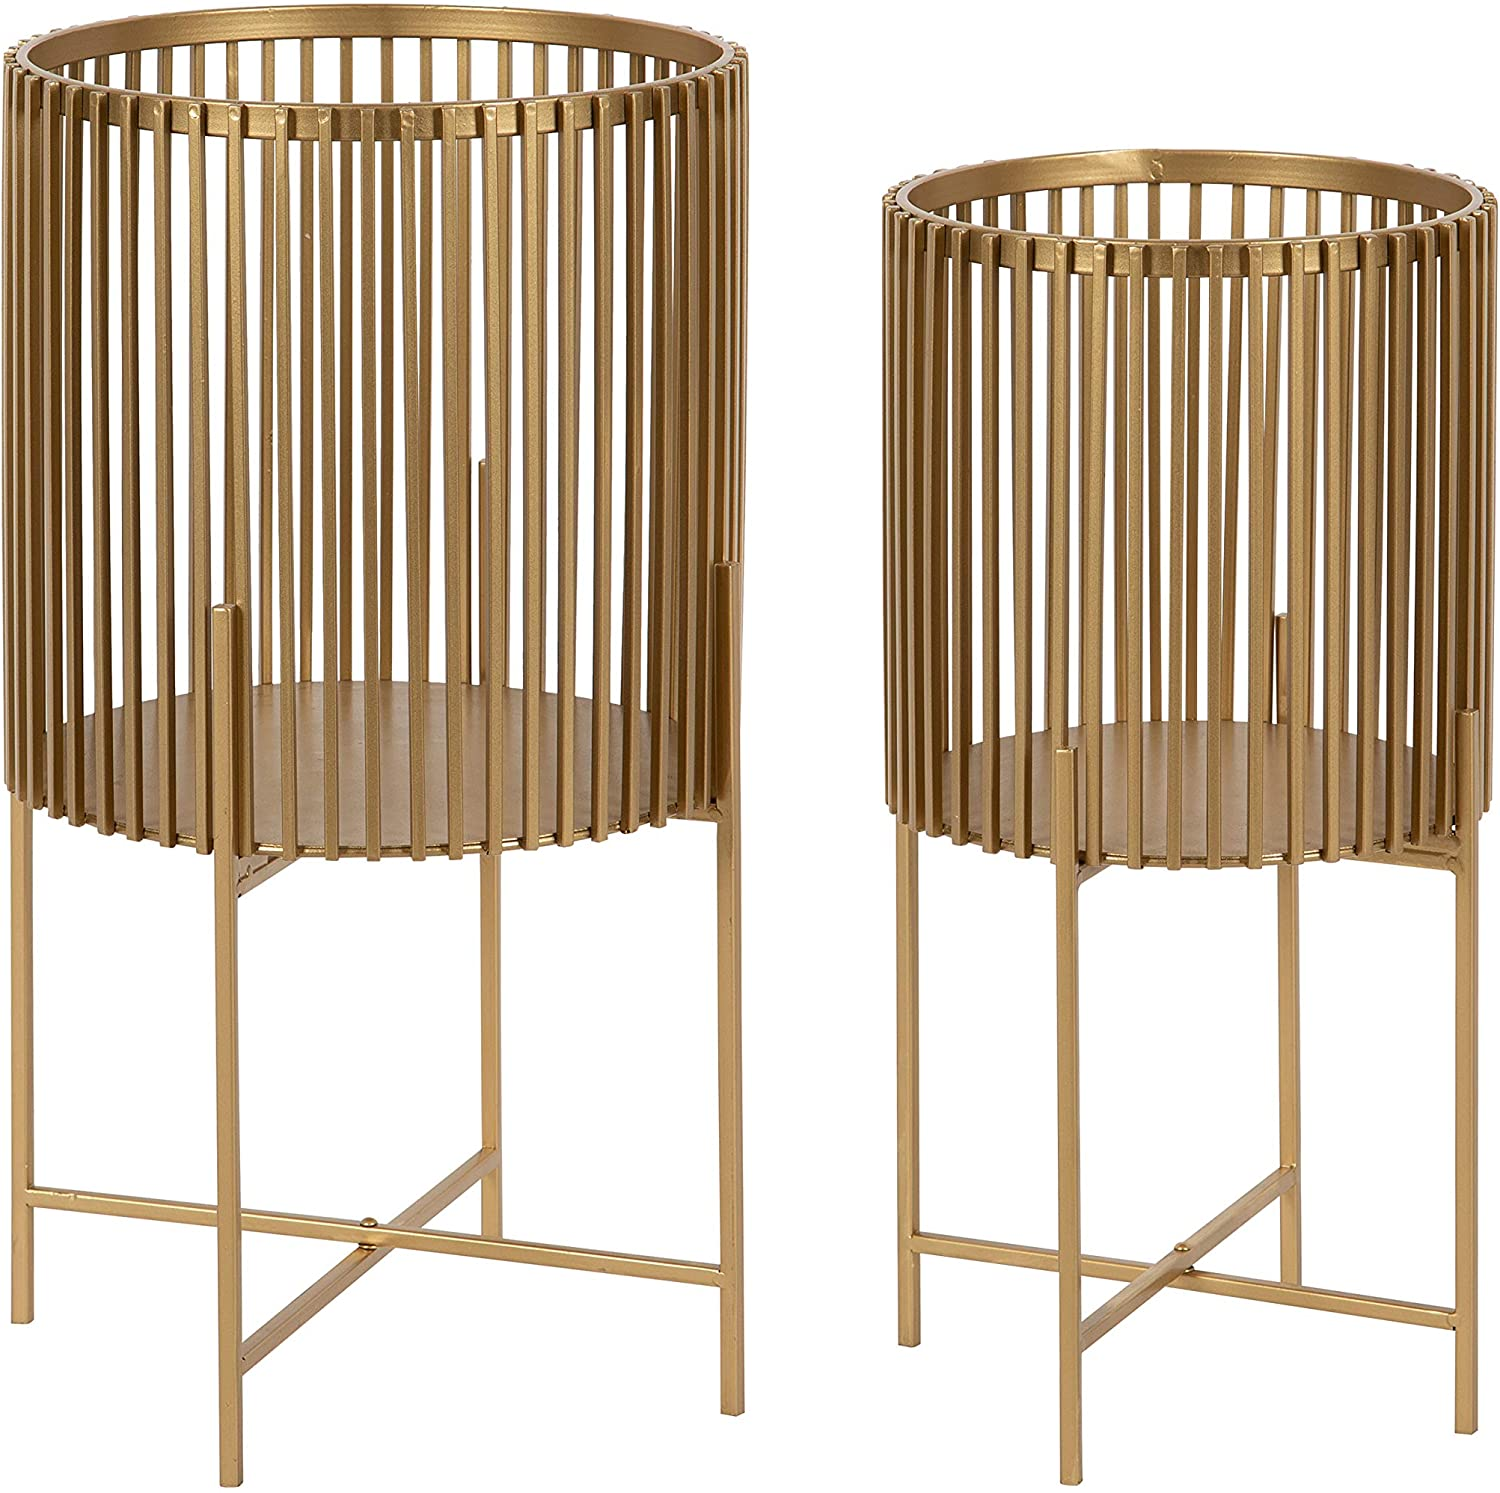 Amazon Com Kate And Laurel Paynter Modern 2 Piece Metal Floor Planter Set With Foldable Stand Gold Home Kitchen